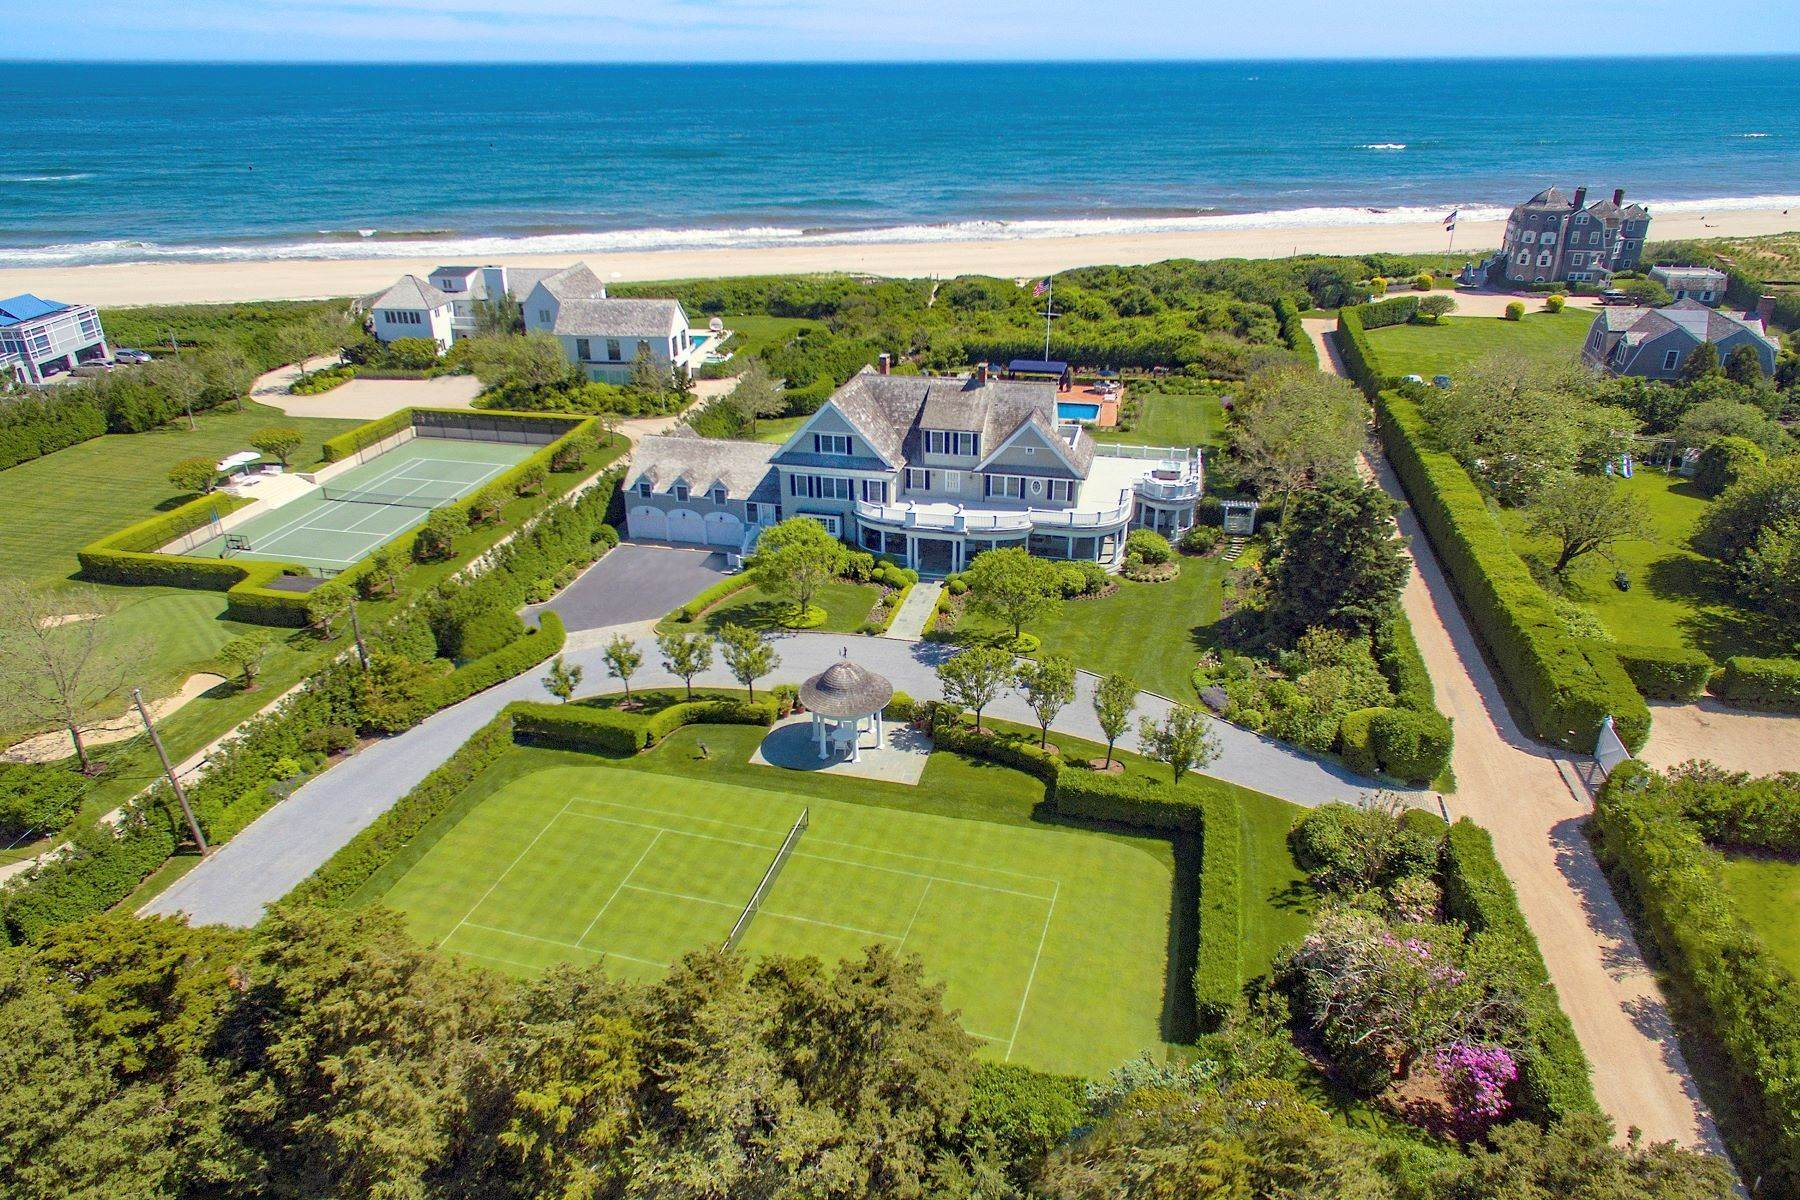 Single Family Homes for Sale at 'Ocean Dream' Estate With Pool & Tennis 5 Fair Lea (Aka 36 Gin Lane), Southampton Village, Southampton, New York, 11968 United States